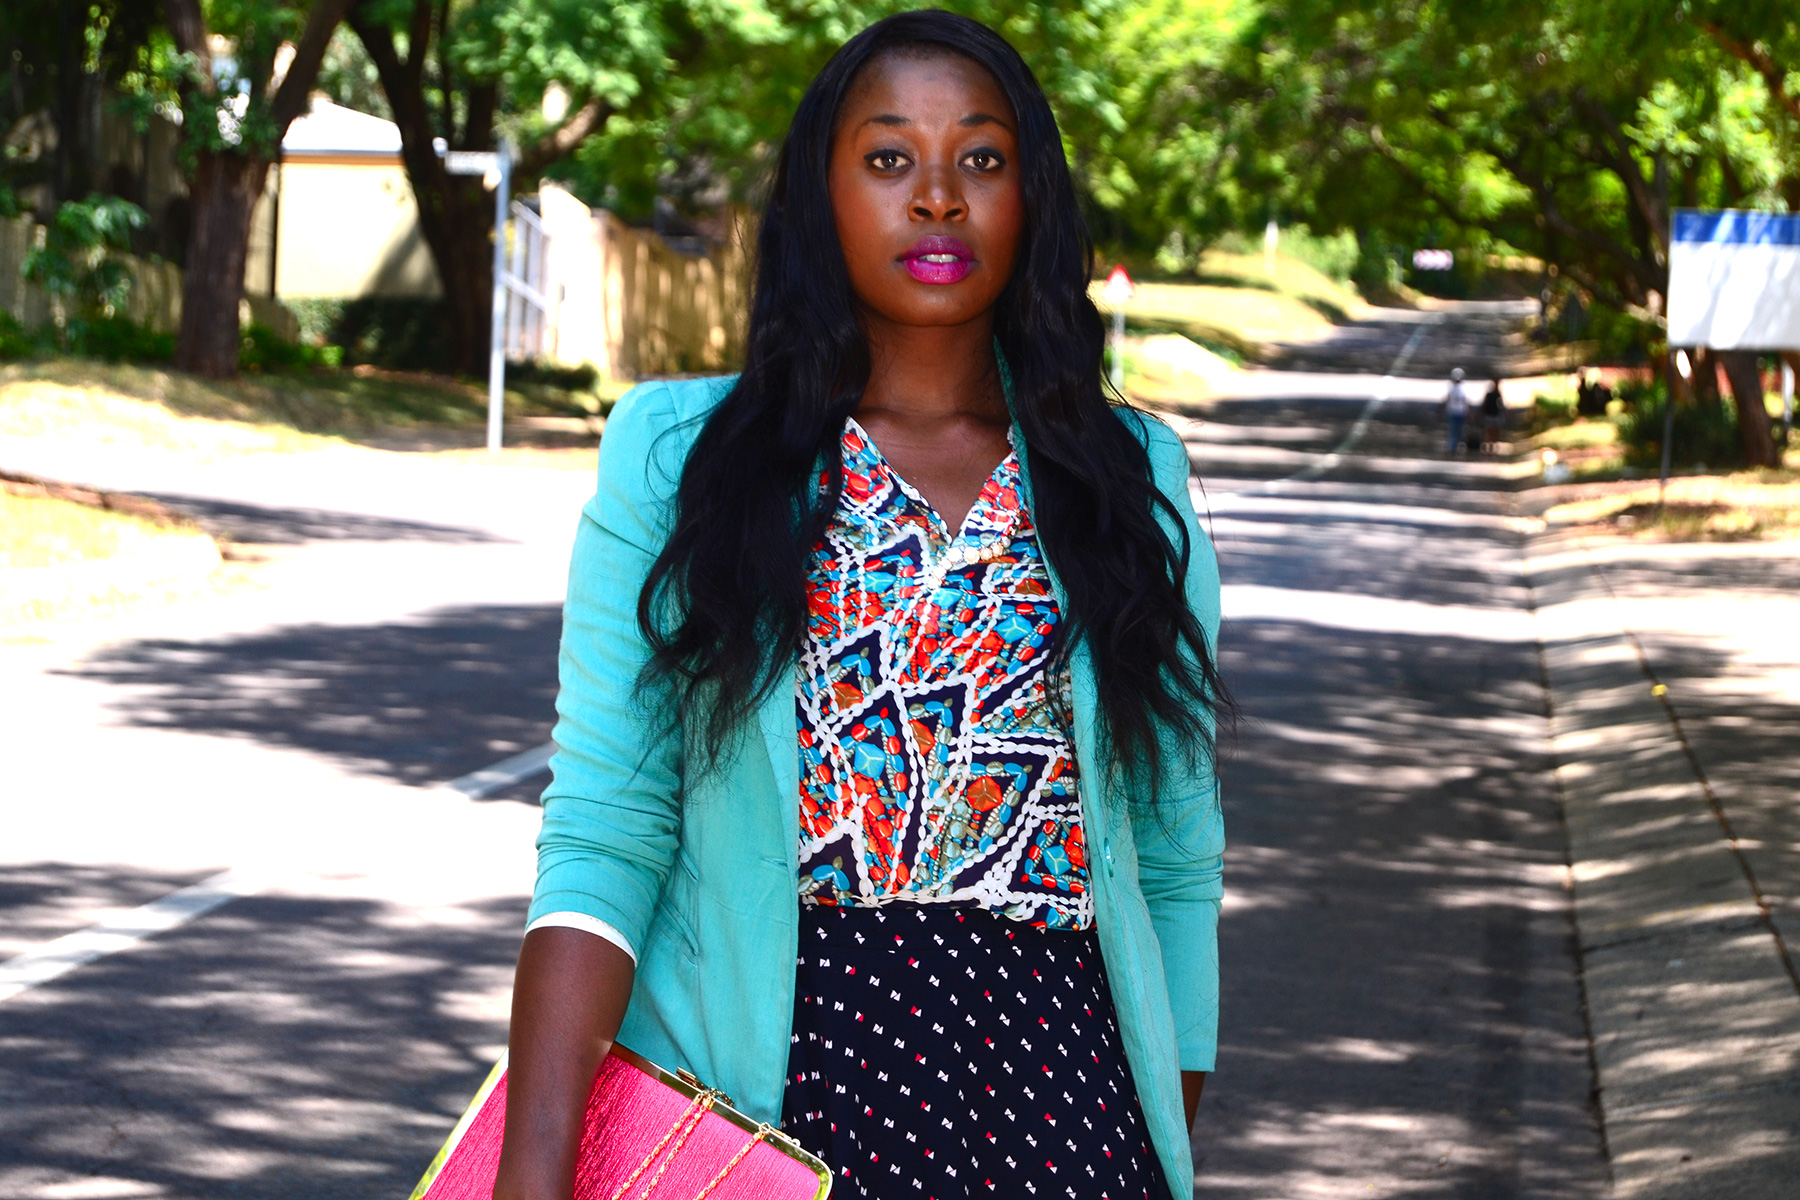 PRINT ON PRINT, SOLANGE KNOWELS STYLE, GREEN JACKET, GREEN BLAZER